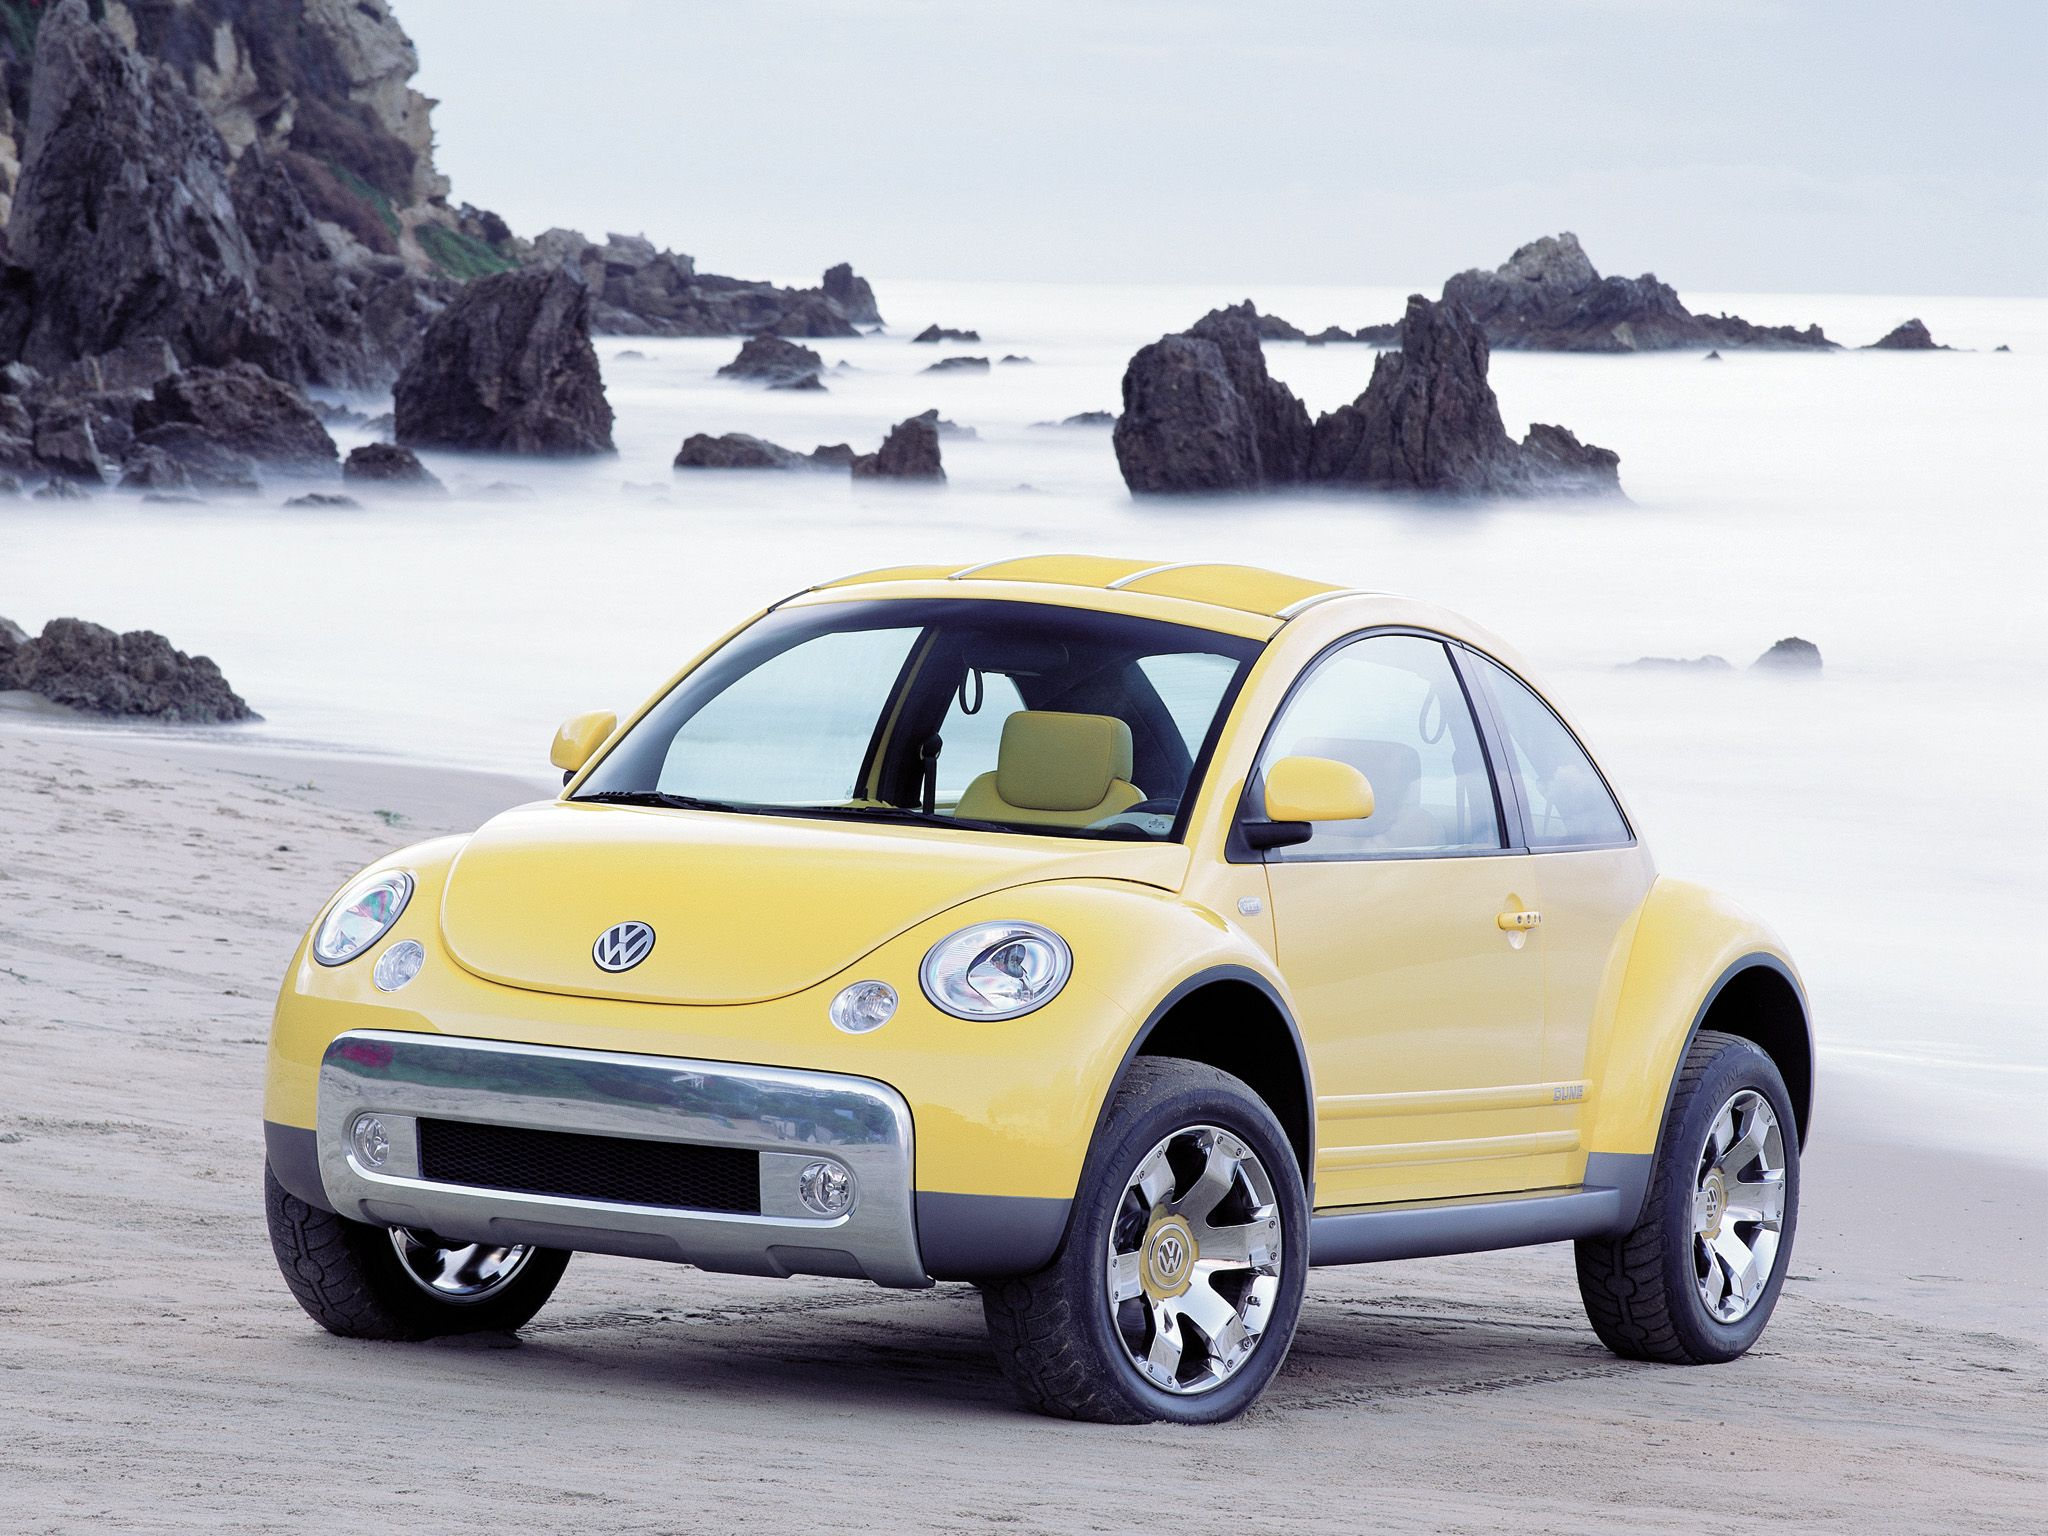 volkswagen new beetle dune concept concept cars prototypes future vehicles pinterest. Black Bedroom Furniture Sets. Home Design Ideas